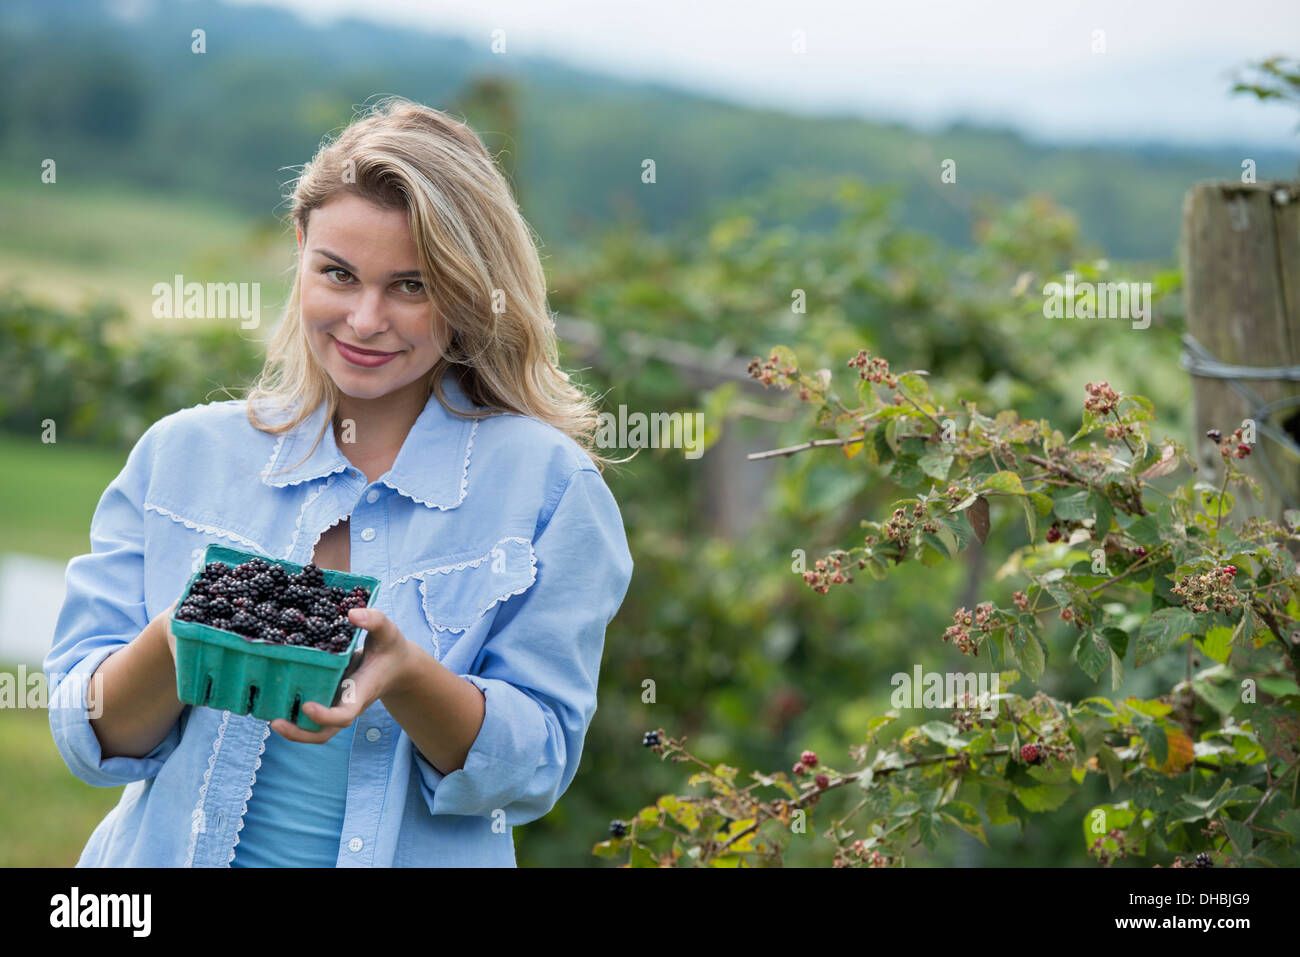 Picking blackberry fruits on an organic farm. A woman holding out a full punnet of glossy berries. - Stock Image